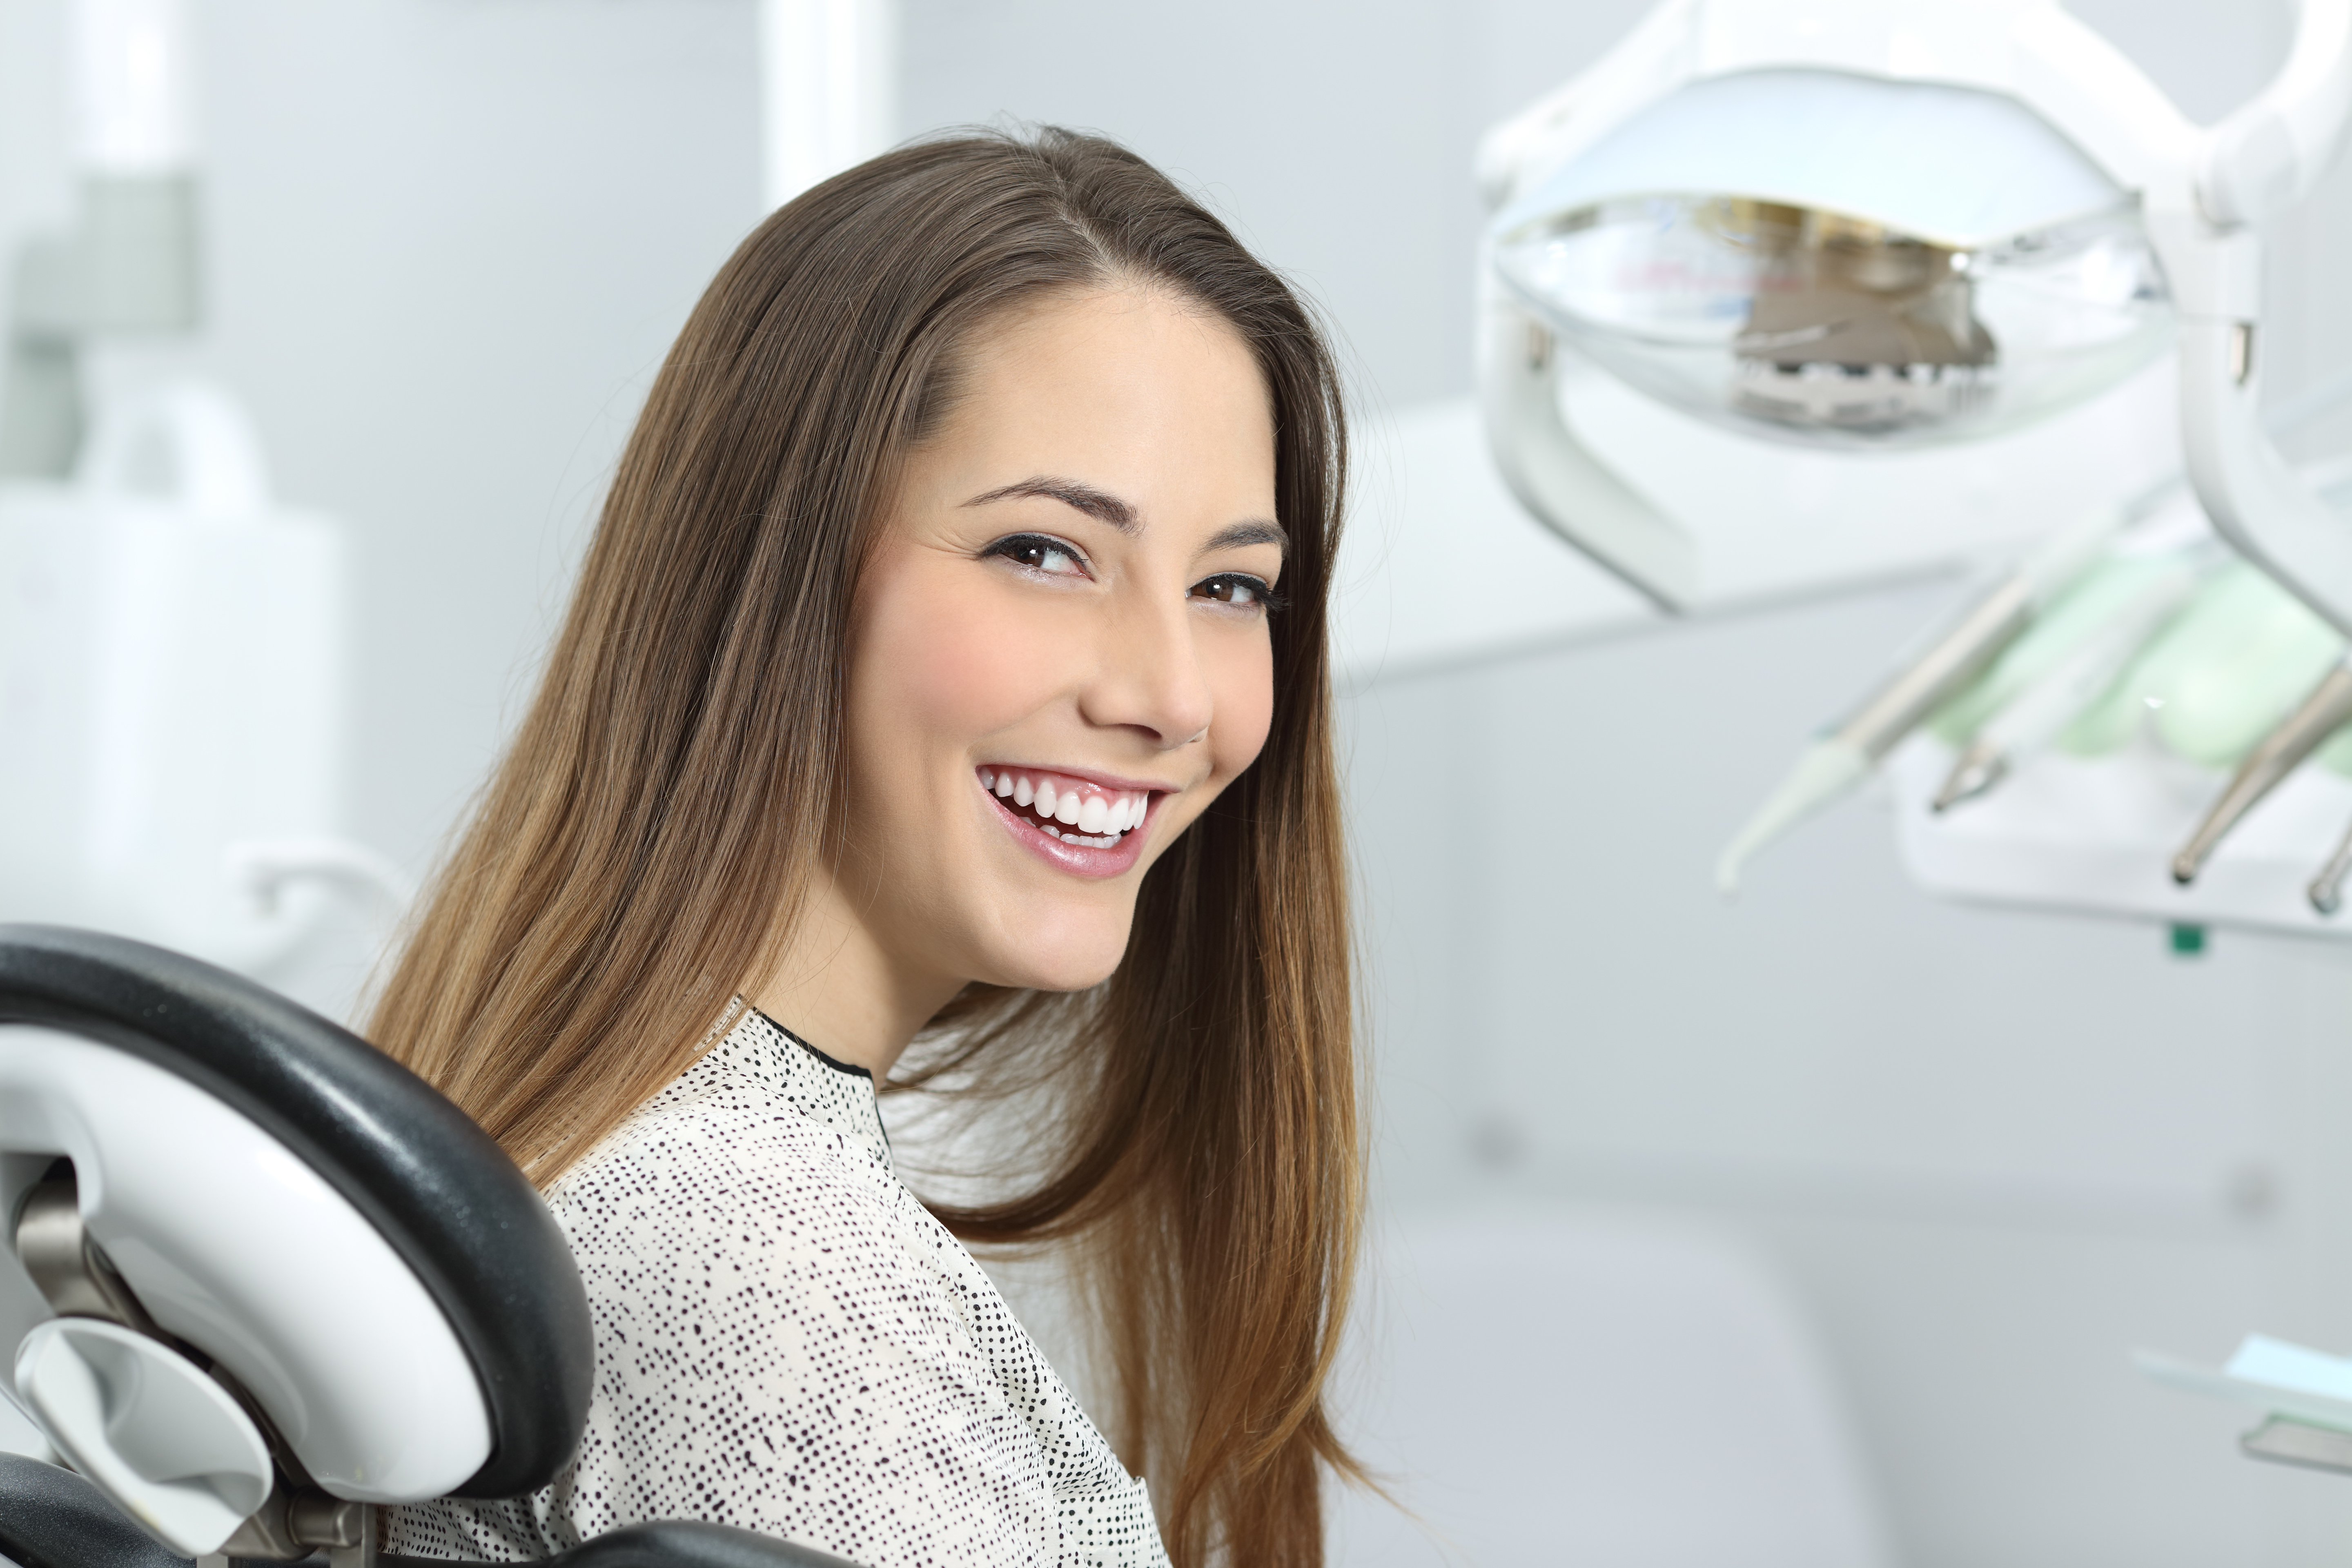 Woman smiling in chair